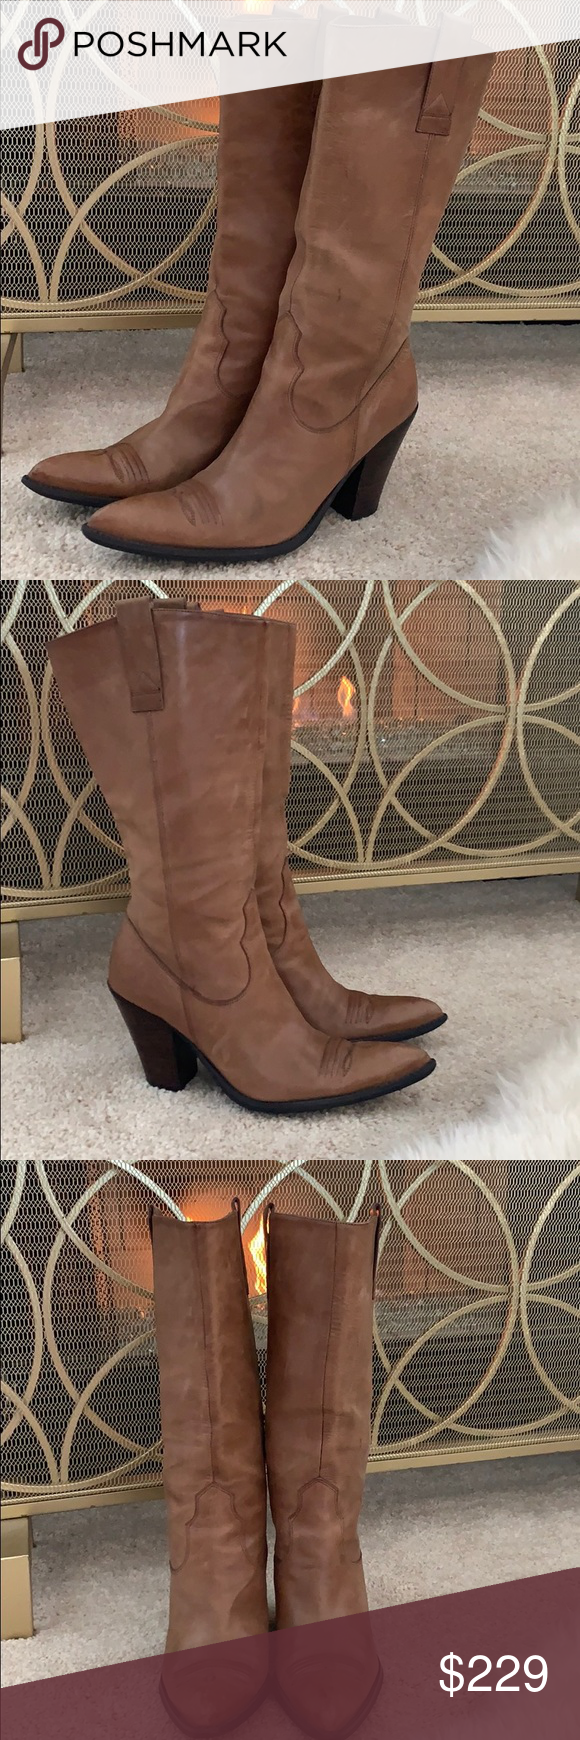 Guess by Marciano Leather Cowboy Boots Beautiful Leather